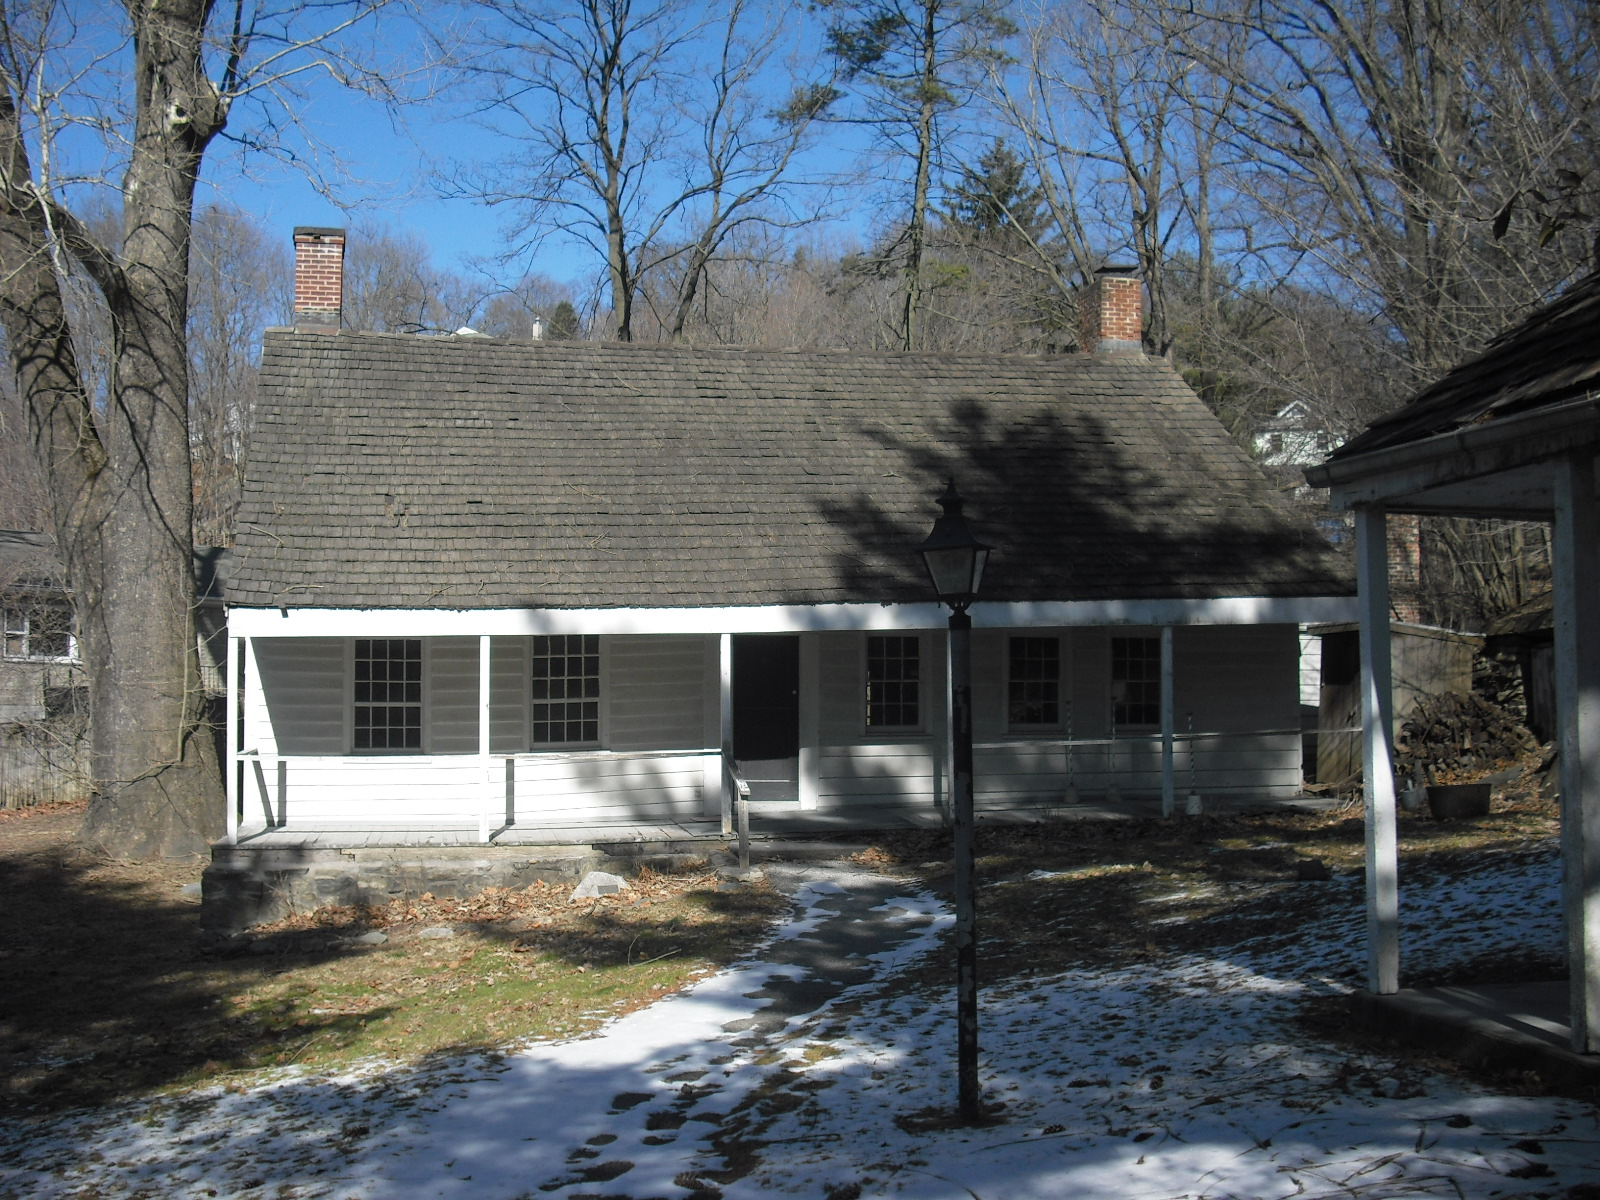 The Elijah Miller House, which served as George Washington's headquarters in White Plains, New York, in October 1776. Photo taken on November 11, 2009.